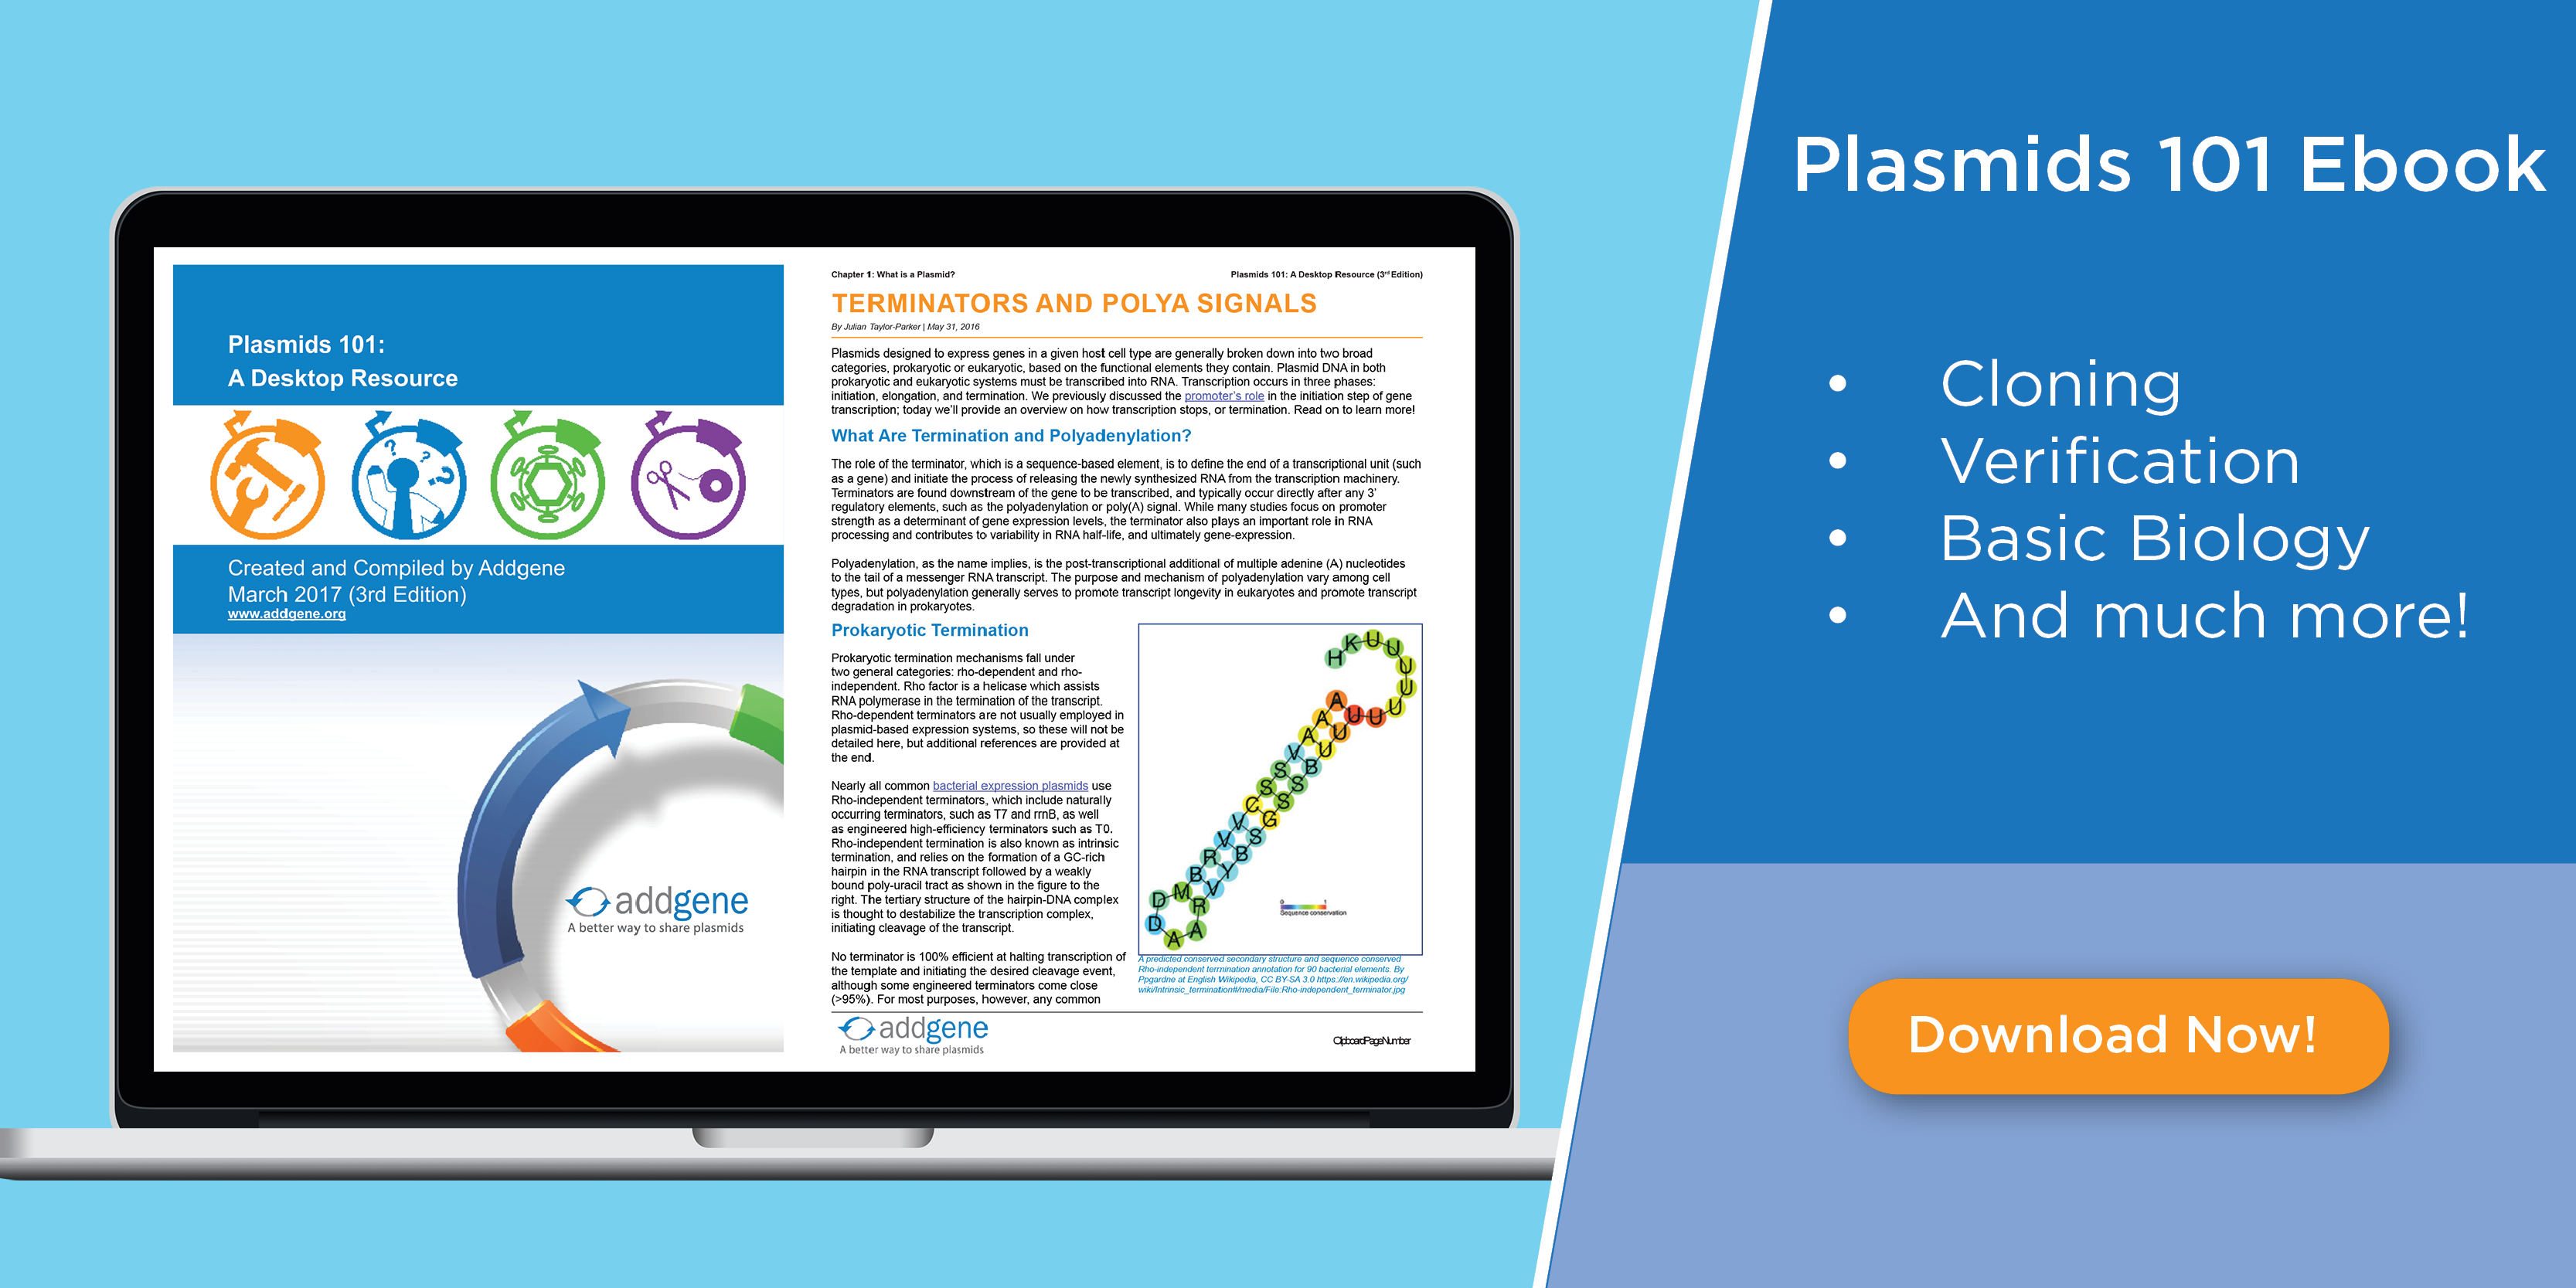 Plasmids 101 eBook